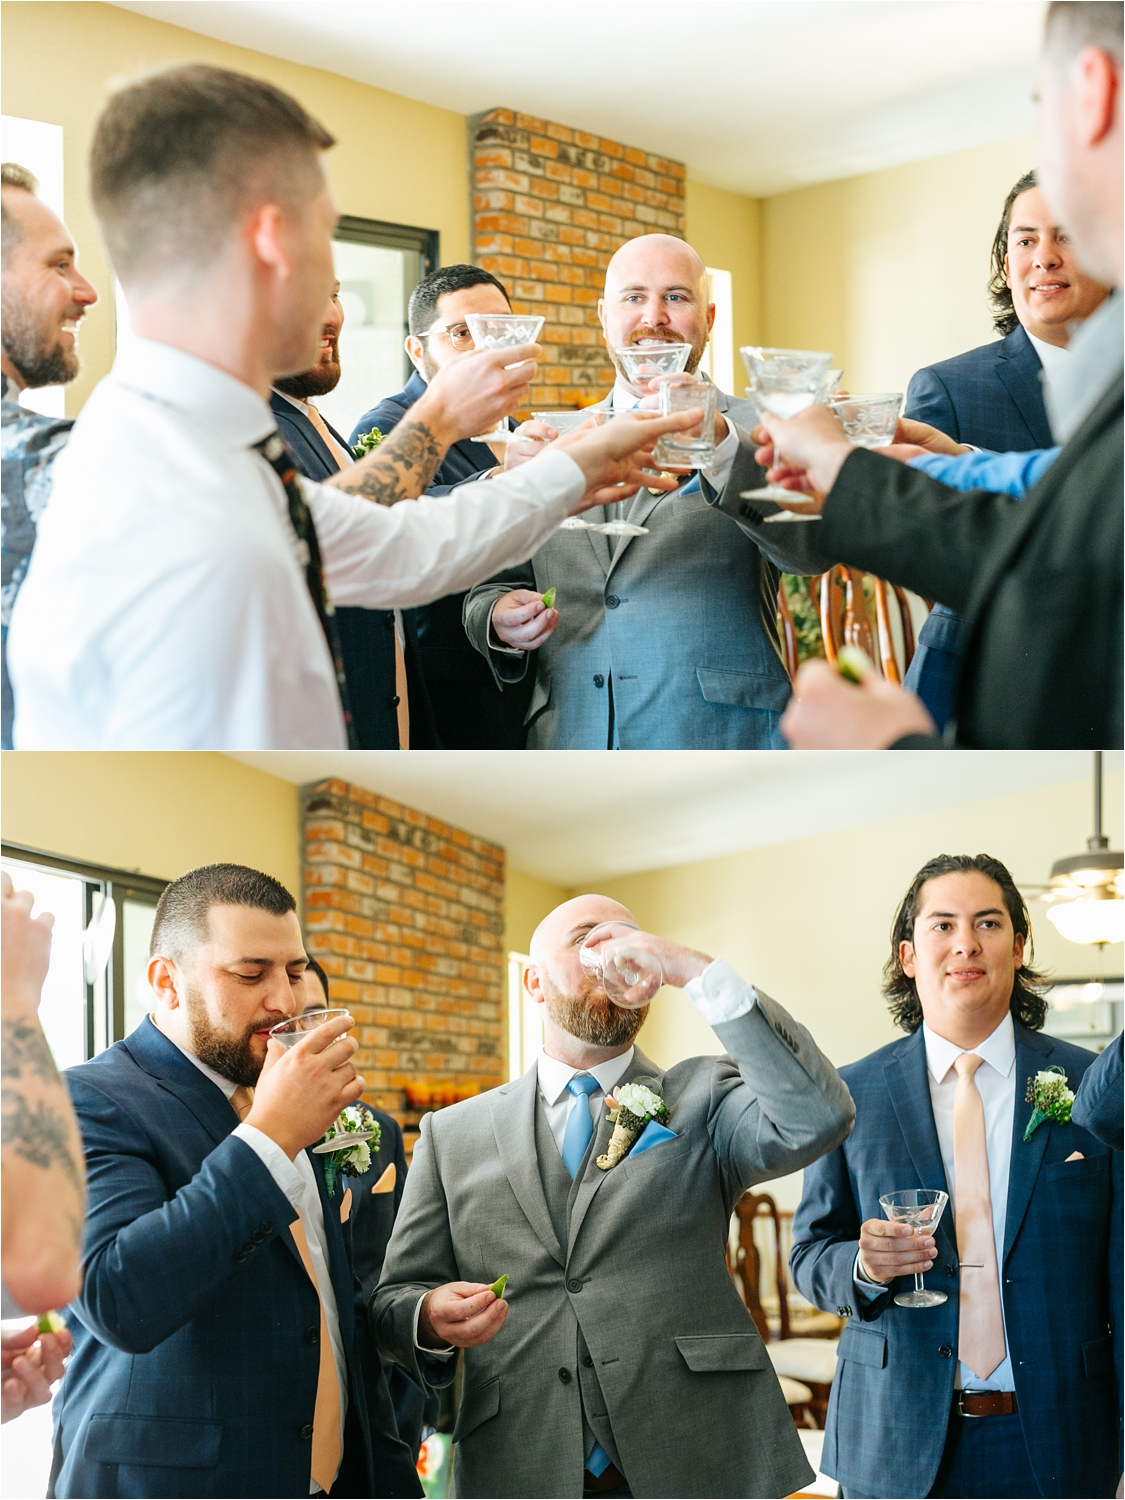 Celebratory drinks with the groom and groomsmen - https://brittneyhannonphotography.com